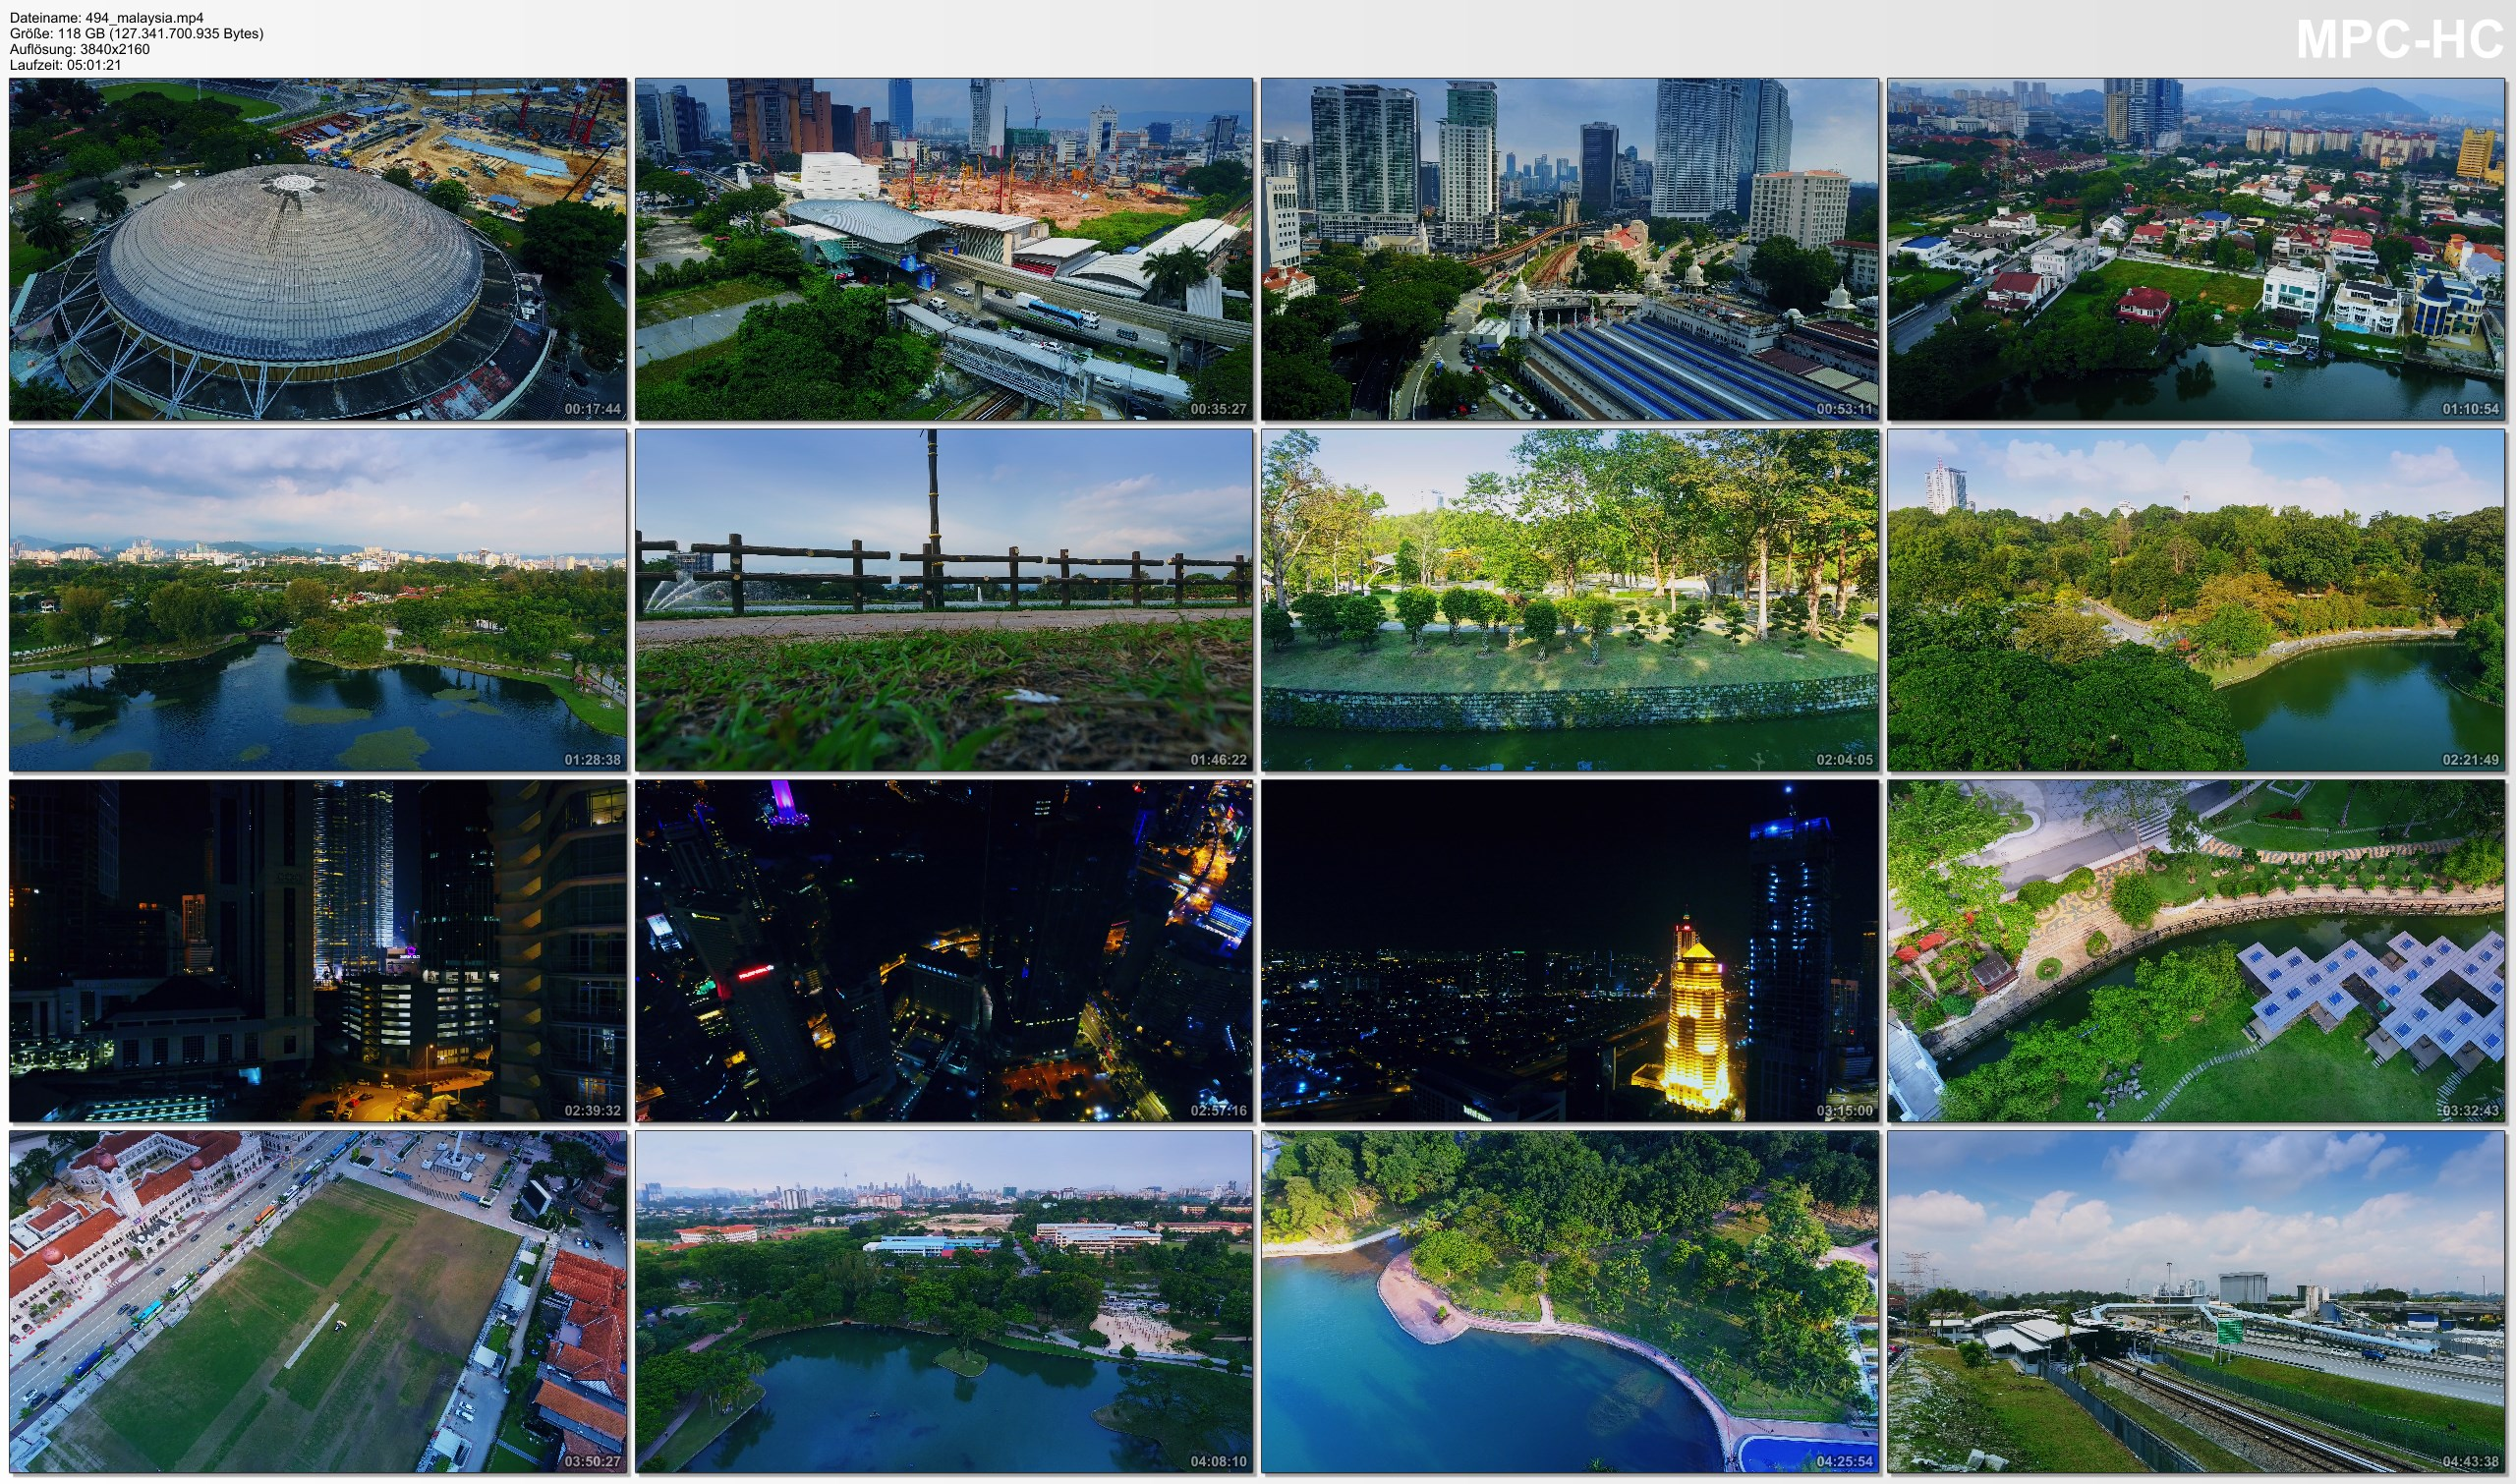 Drone Pictures from Video 【4K】Drone RAW Footage | This is MALAYSIA 2020 | 5 Hours of Kuala Lumpur | UltraHD Stock Video